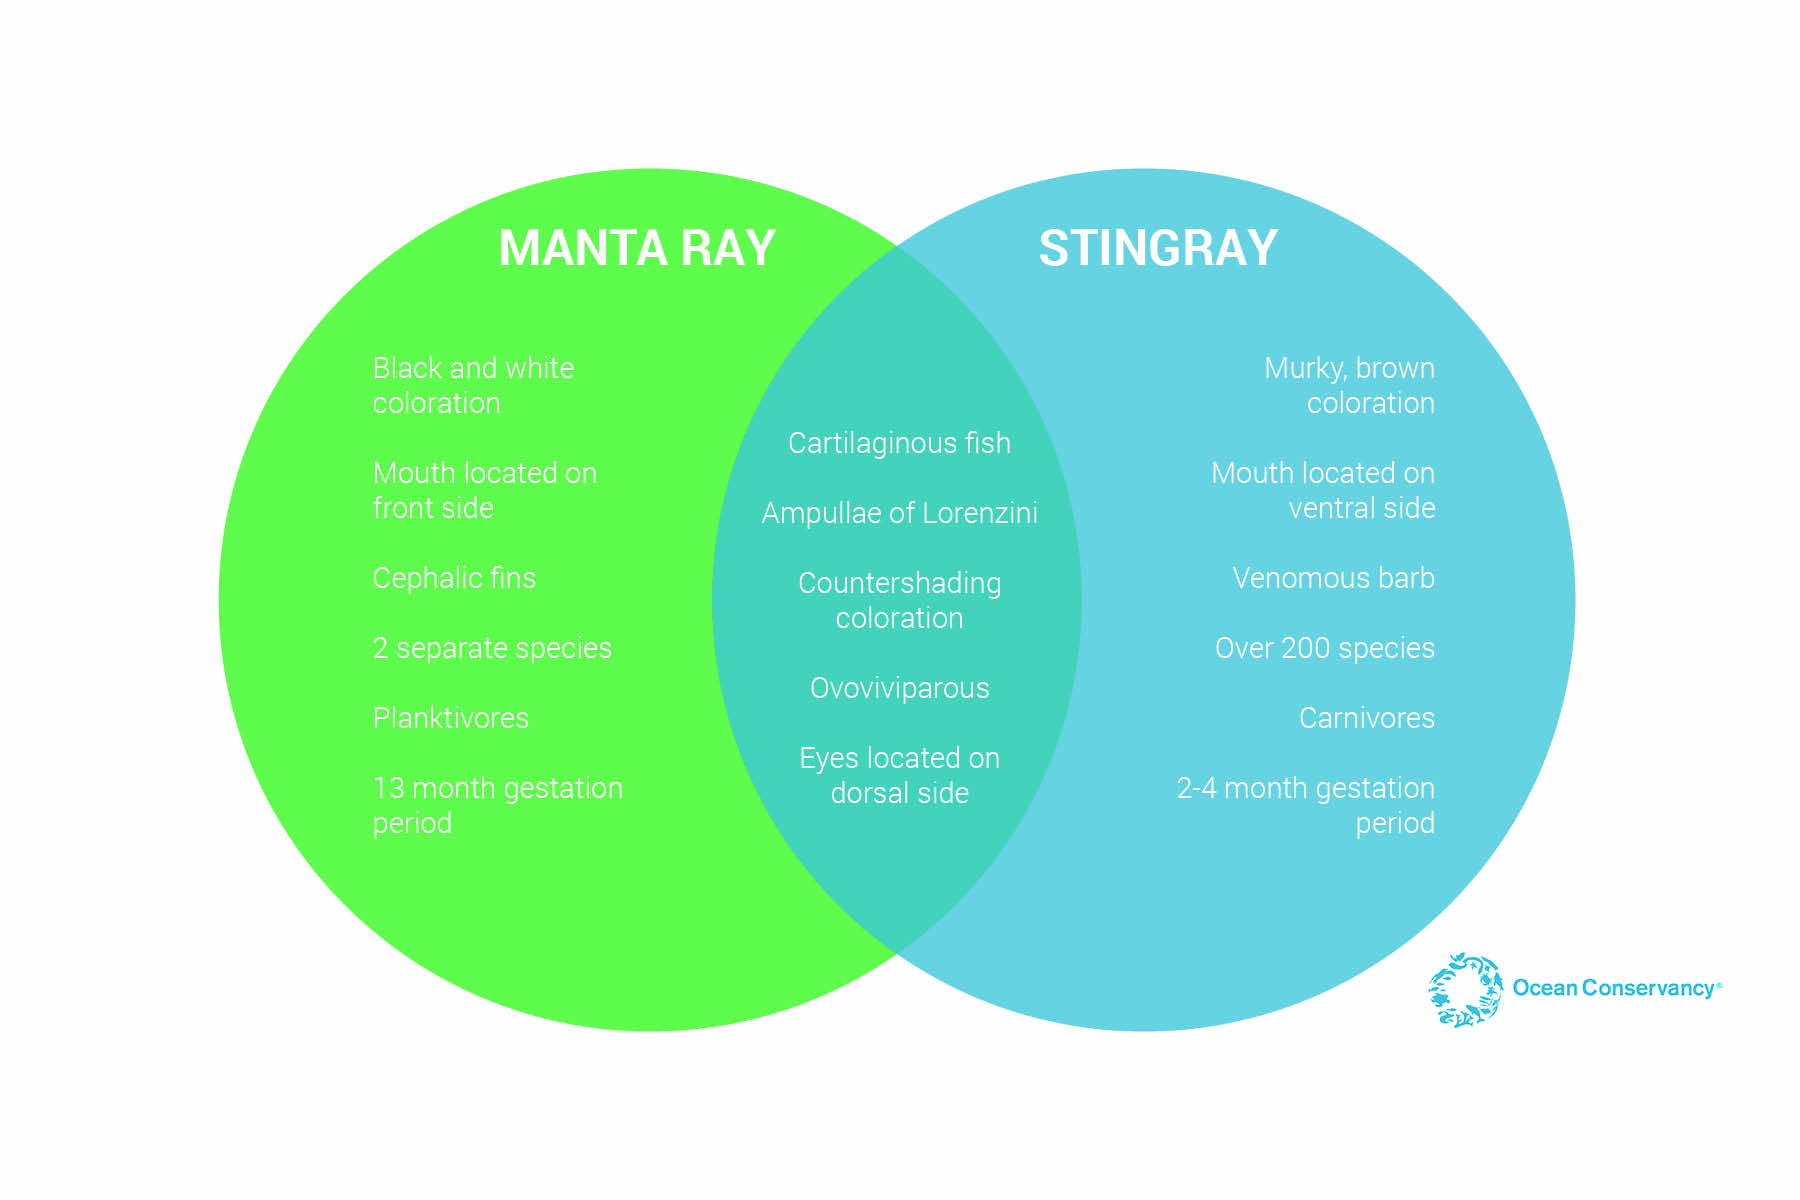 hight resolution of there is so much more to learn about stingrays and manta rays as well as similar groups like skates guitarfish and butterfly rays